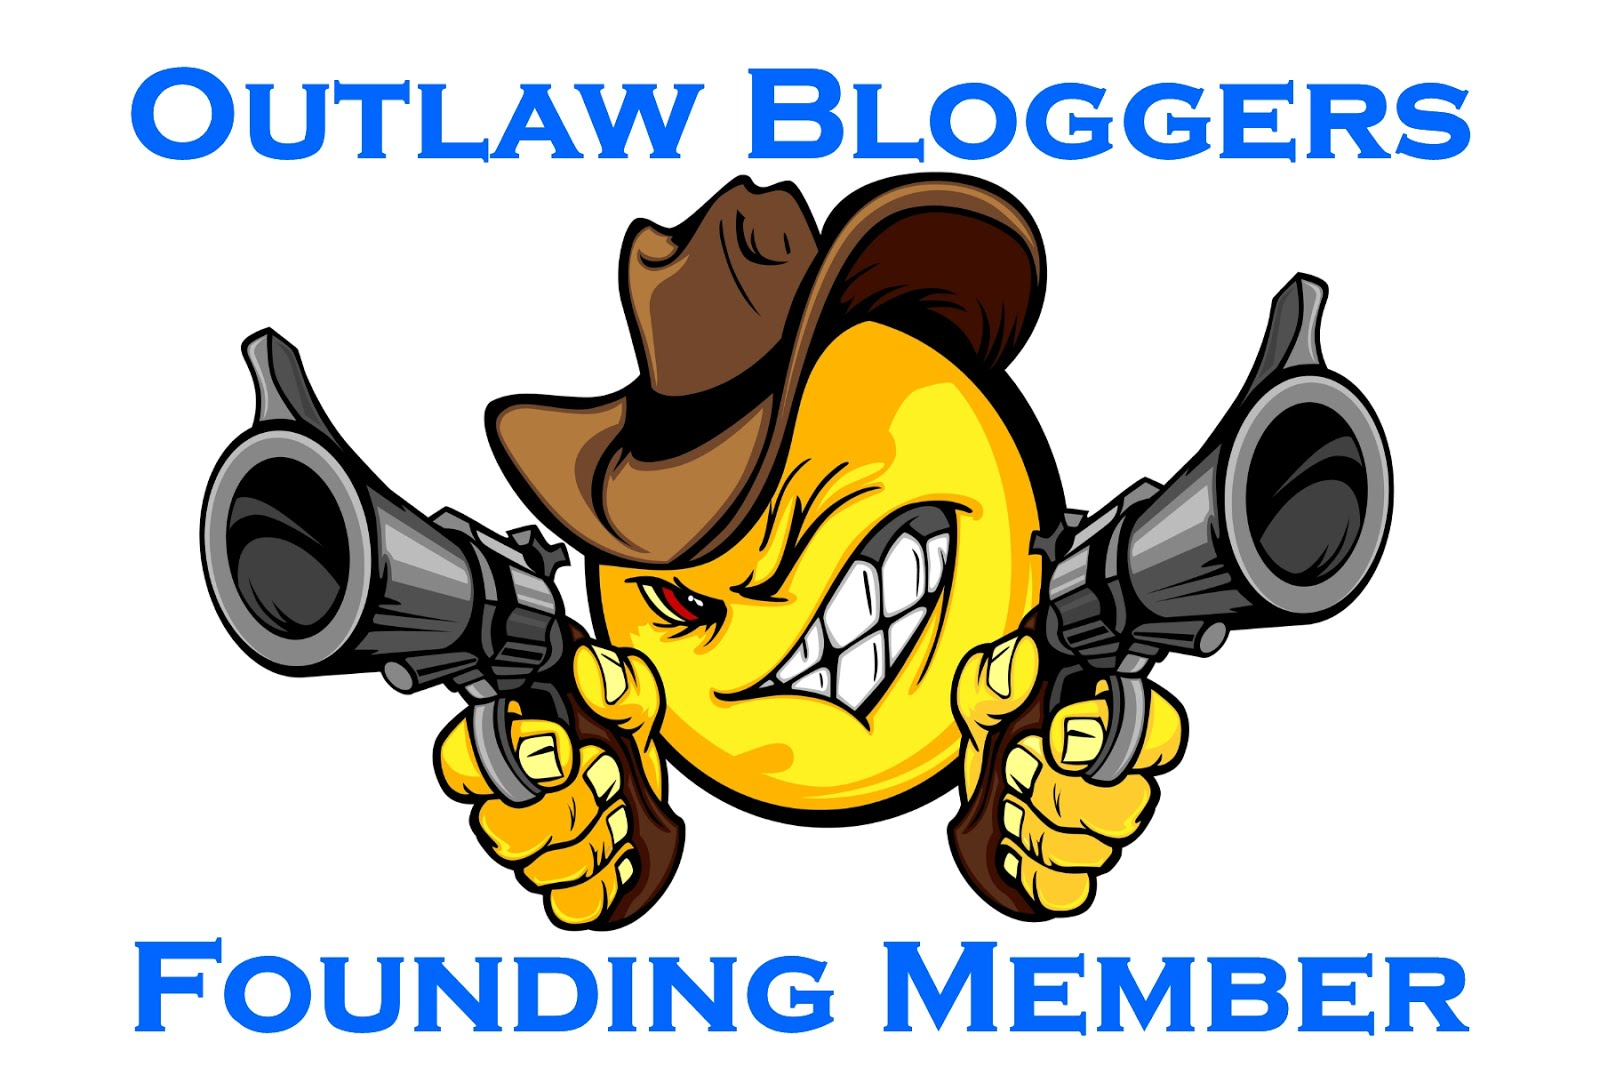 Support Your Outlaw Bloggers!